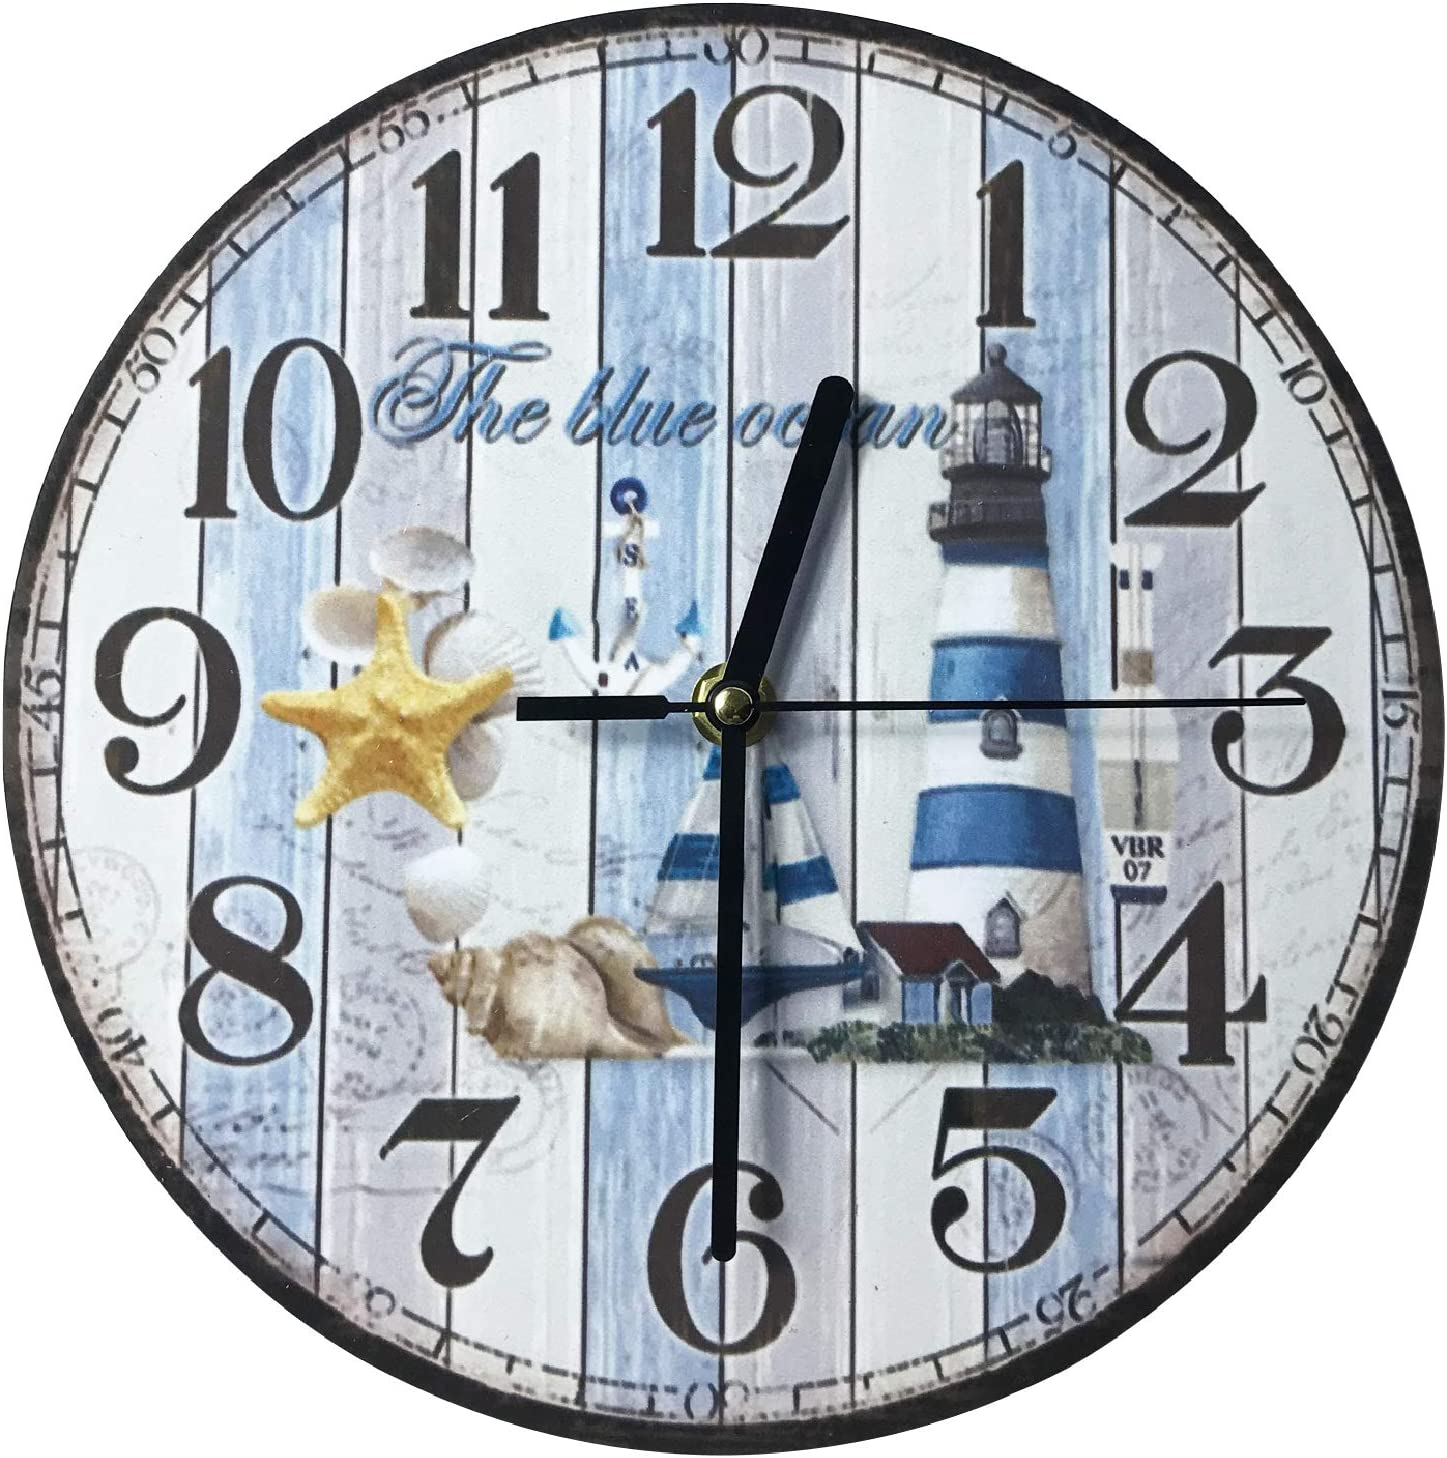 HeiBAIlong 10 Inch Wooden Wall Clock Vintage Wall Clock Blue Lighthouse for Home Office Bedroom Living Room Decor Non Ticking